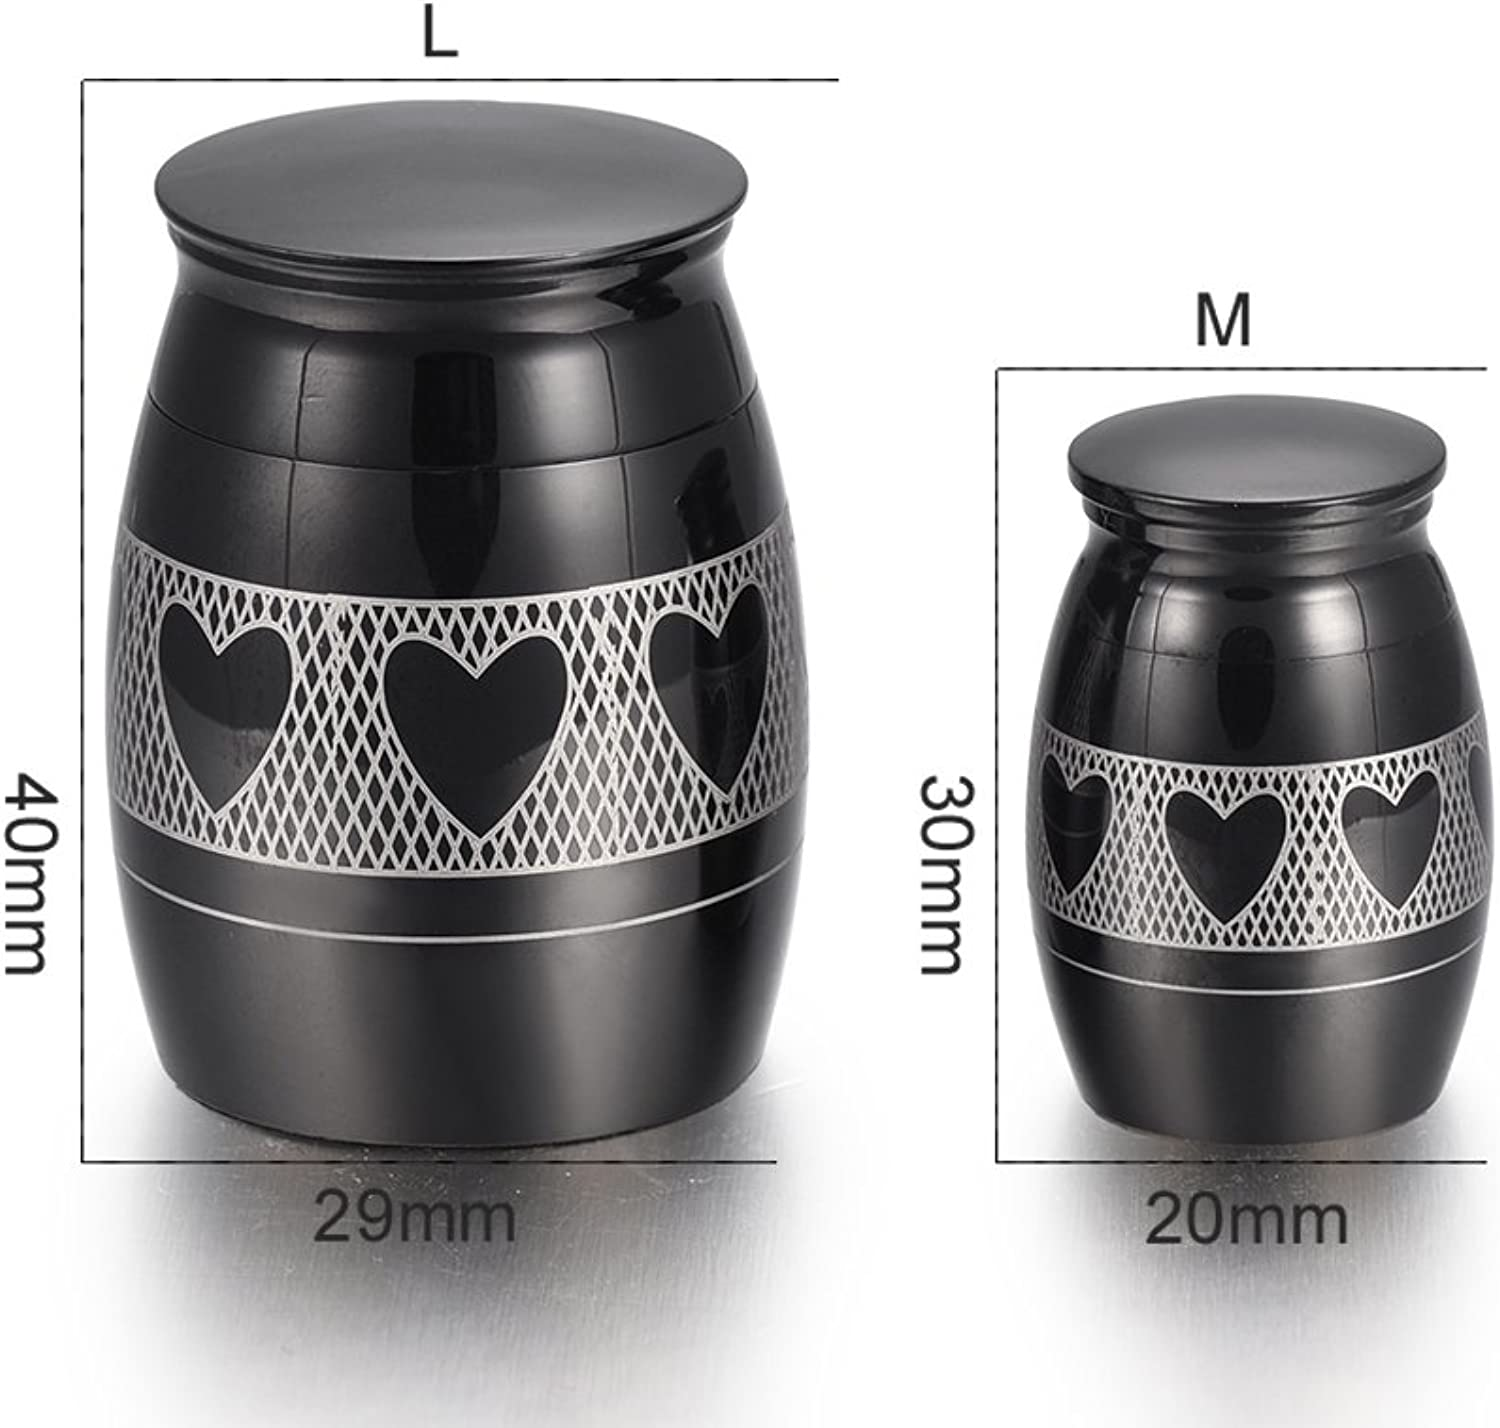 Pet Stainless Steel Mini Memorial Urn Cremation containers for Ashes Keepsake Jewelry Funeral Casket Memorial Urn for Human,4